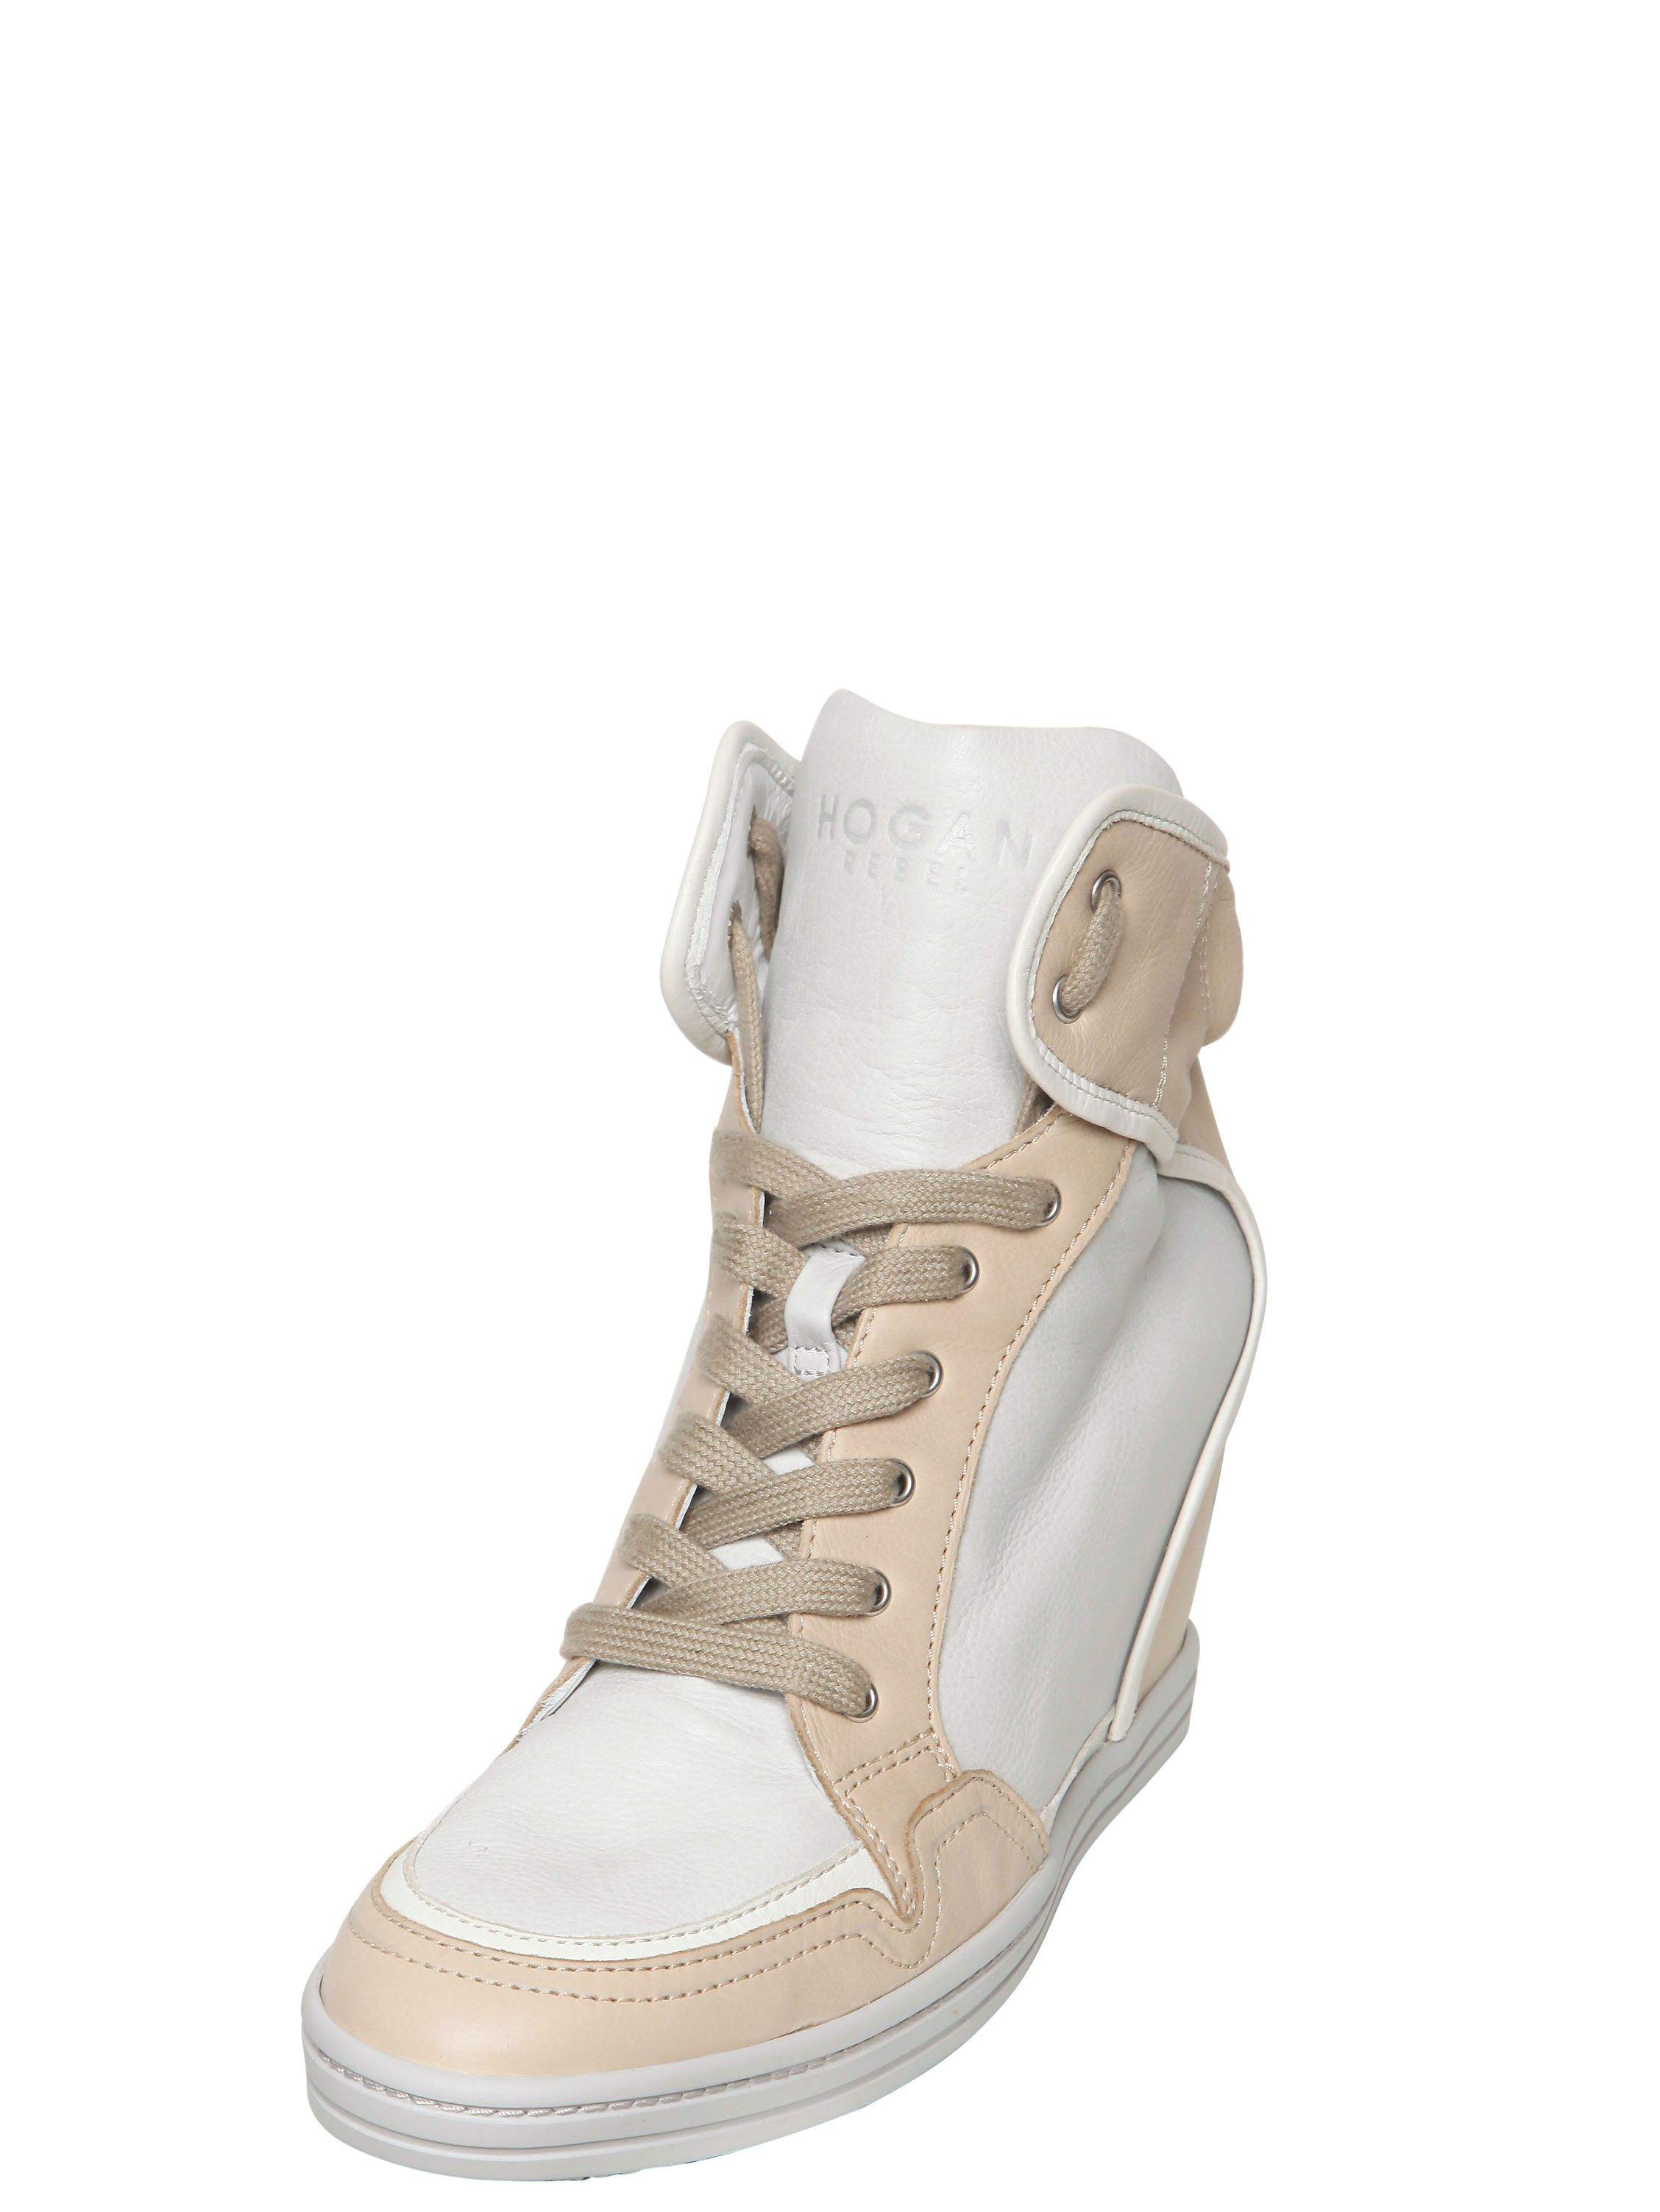 lyst hogan rebel 90mm two tone calfskin wedge sneakers in natural. Black Bedroom Furniture Sets. Home Design Ideas